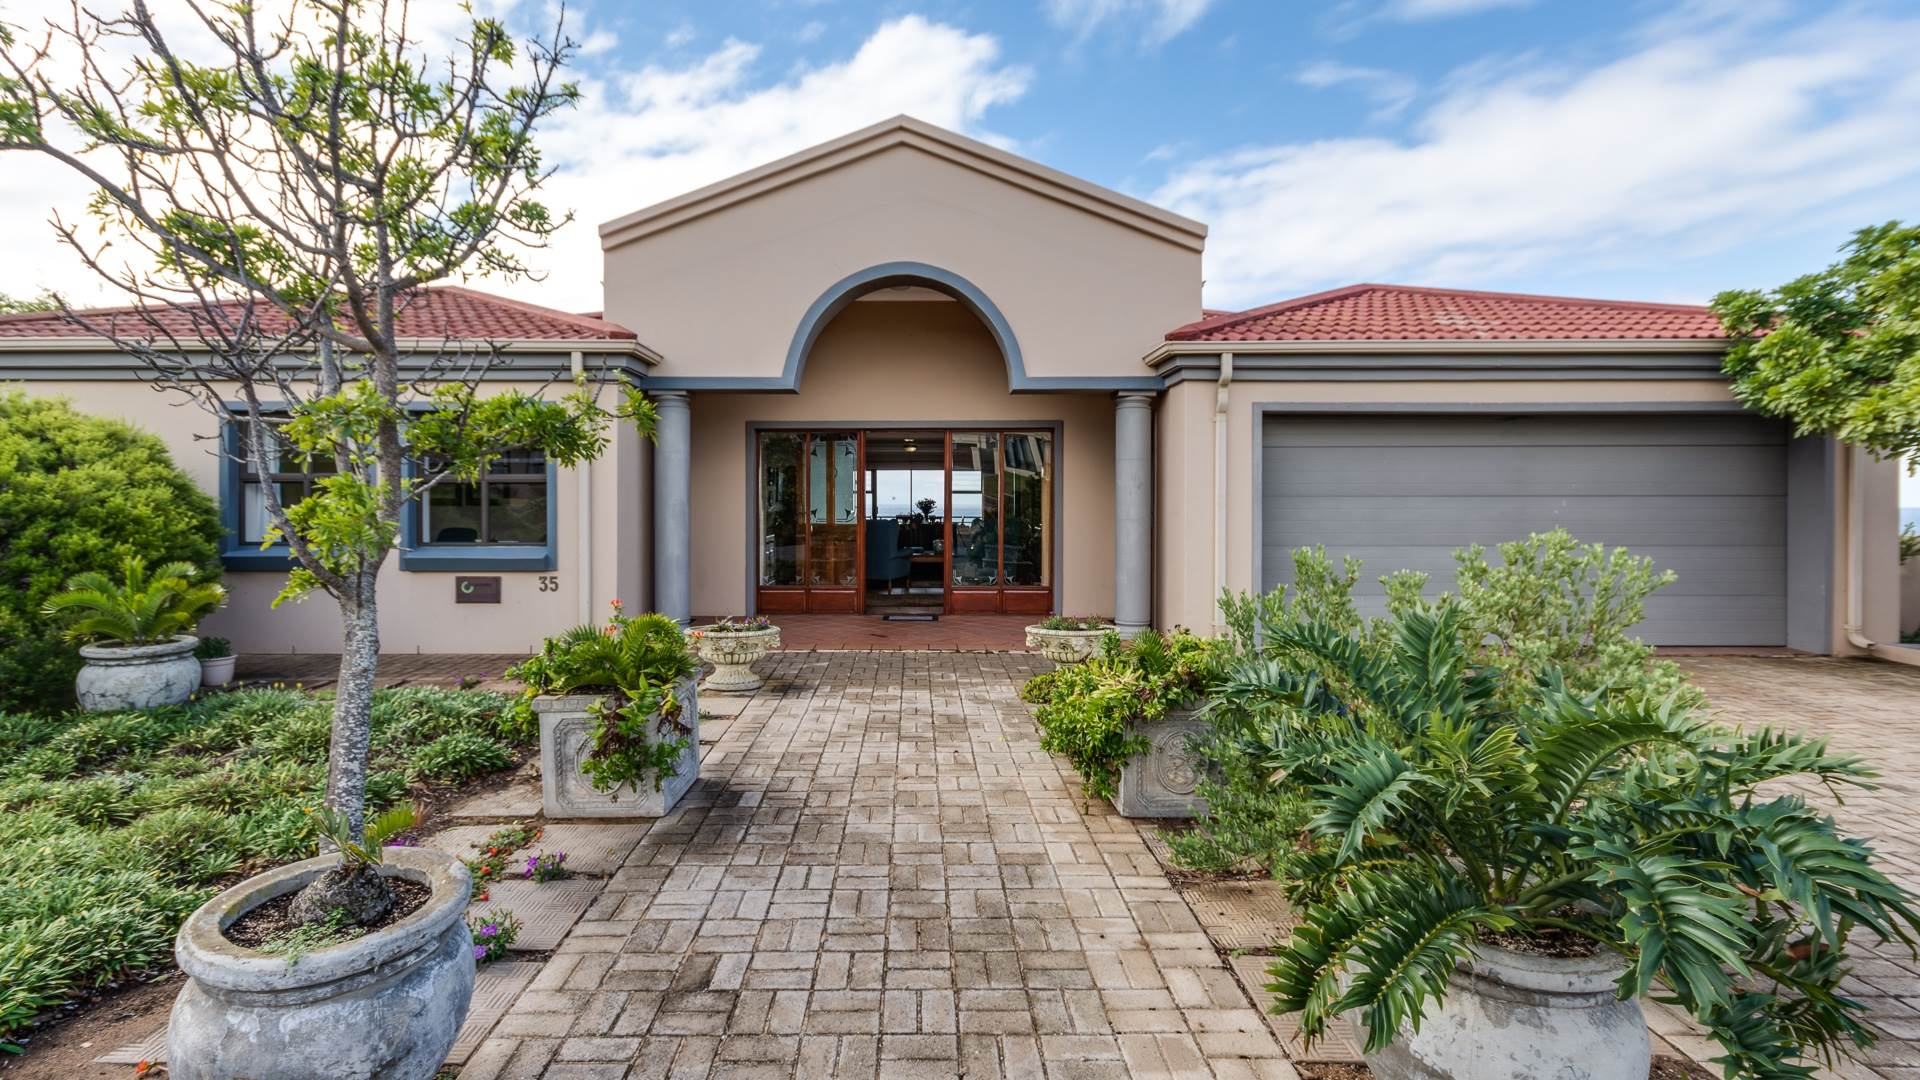 5 BedroomHouse For Sale In Still Bay West